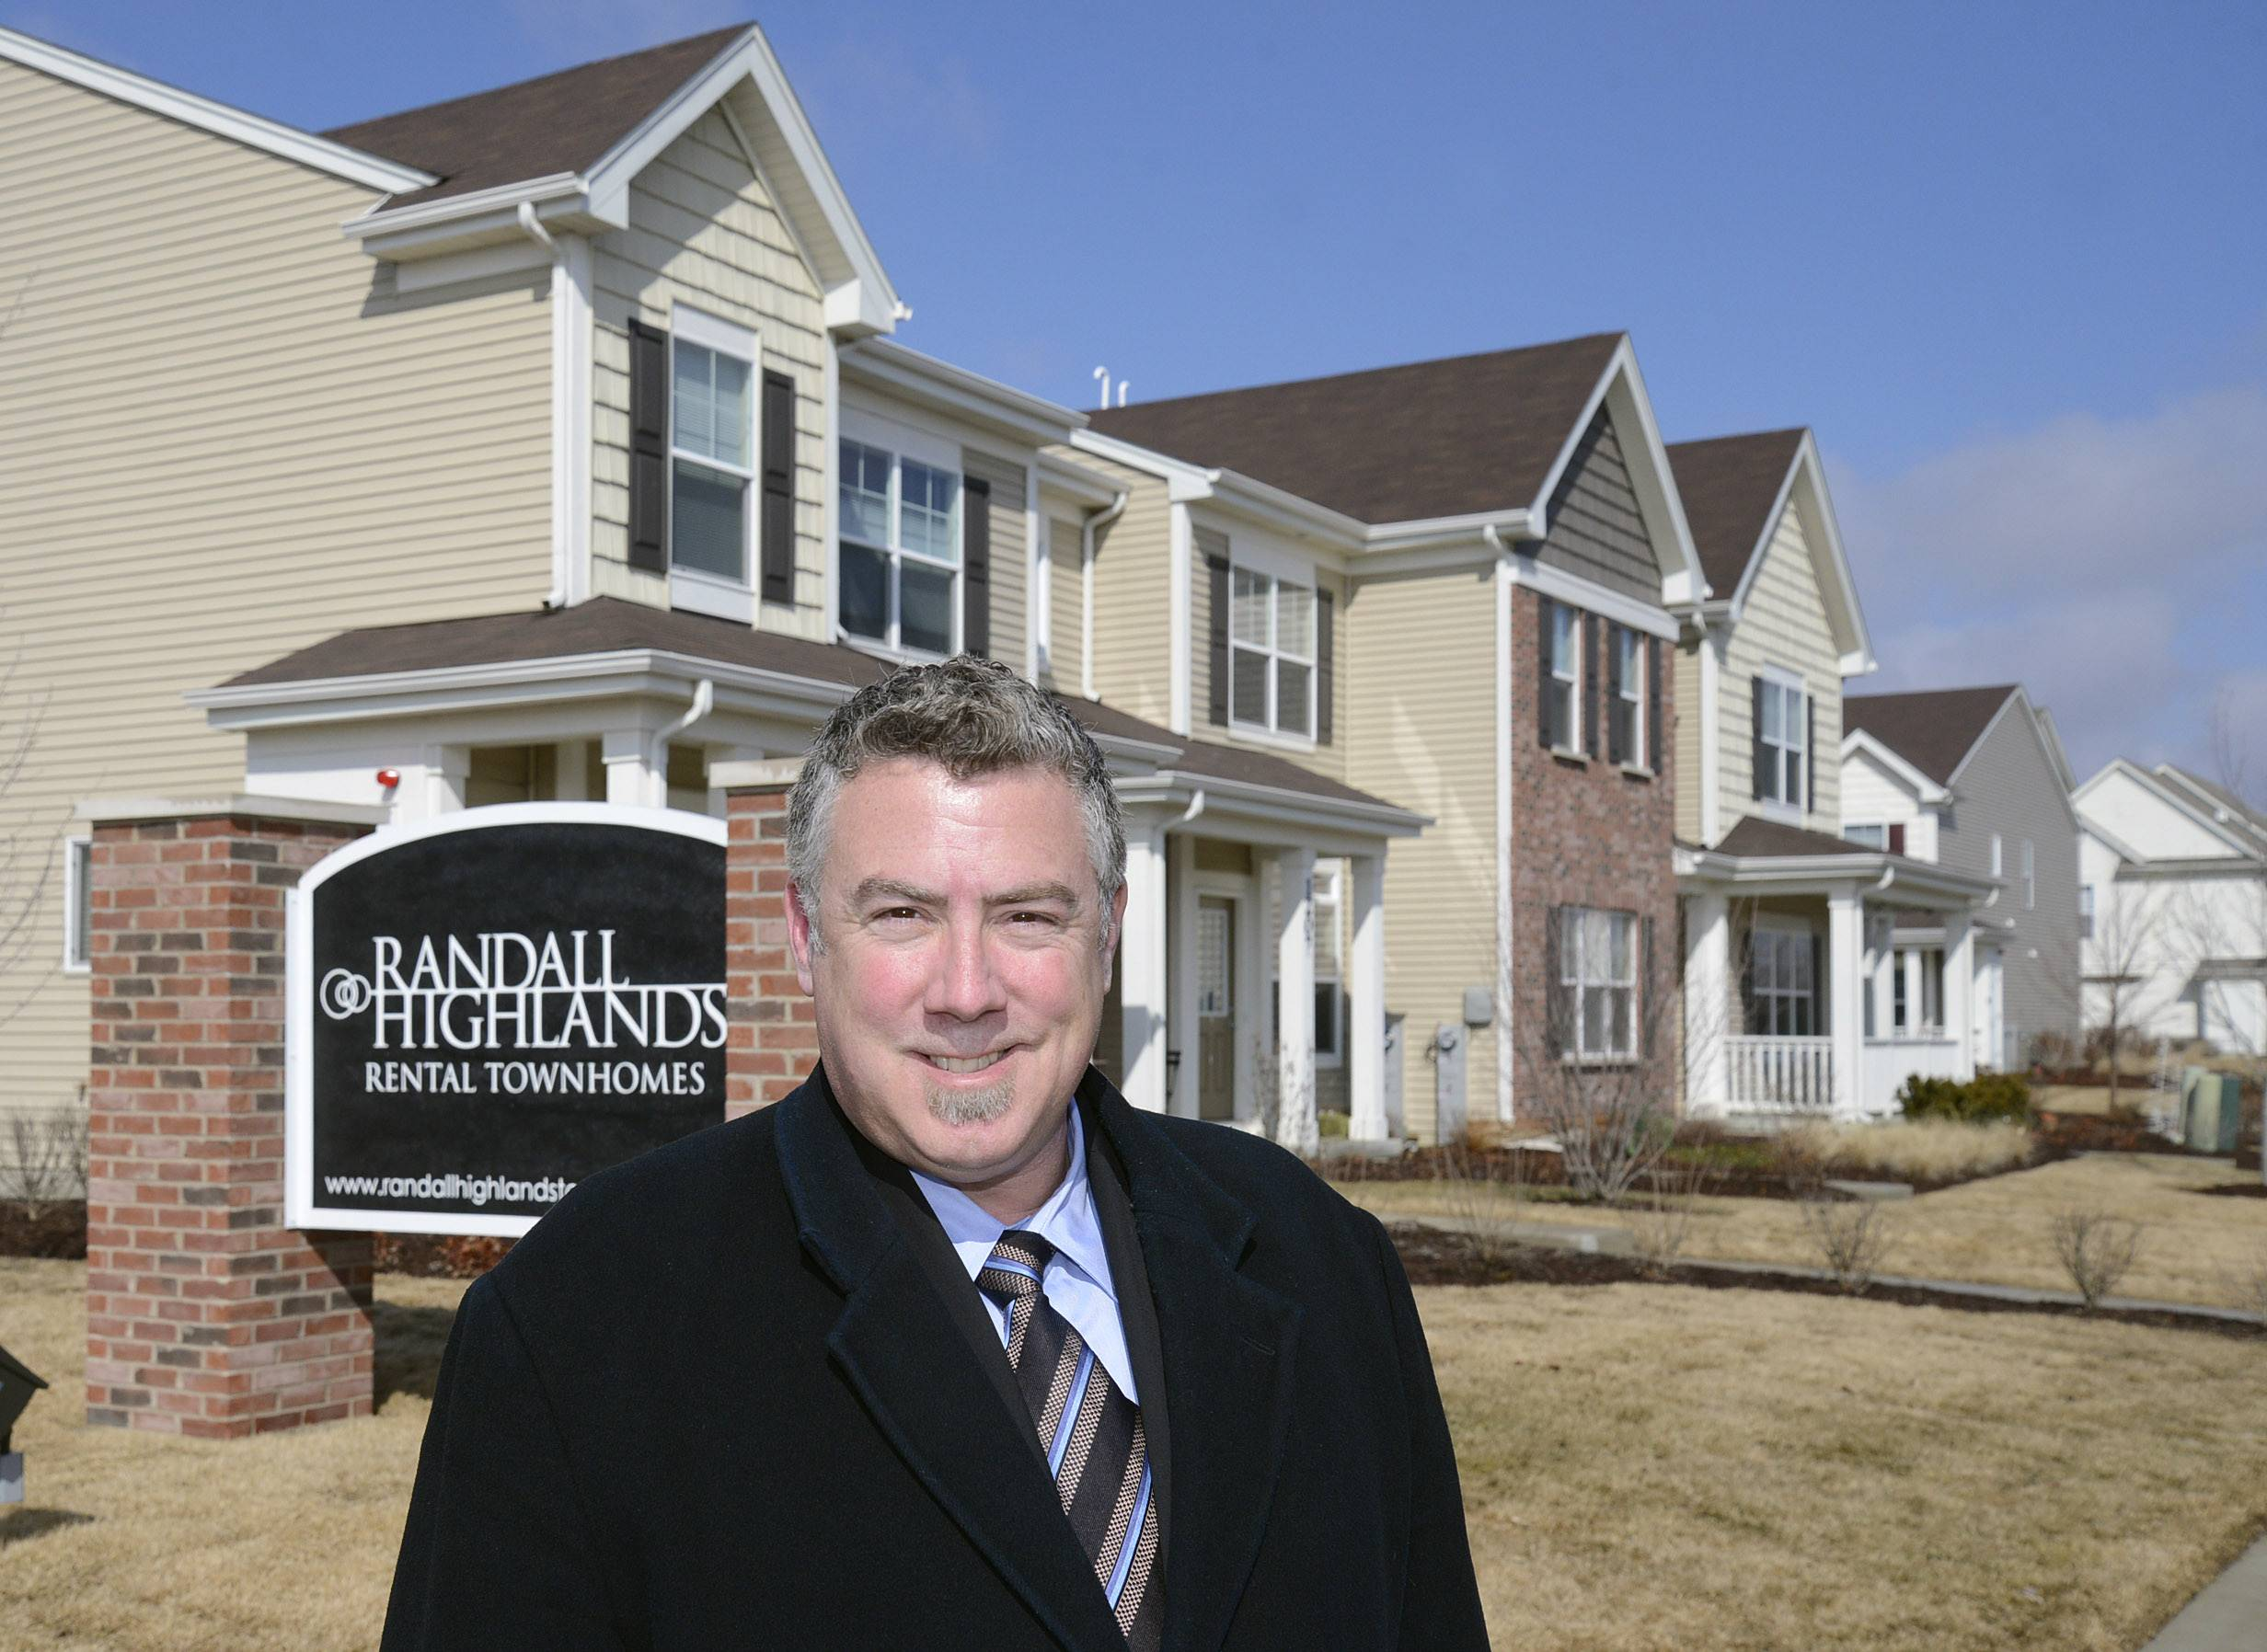 Jeff Prosapio, director of project management for Marquette Companies of Naperville, says the Randall Highlands apartment community in North Aurora is one of the company's recent development efforts that completed a stalled project another developer couldn't finish.